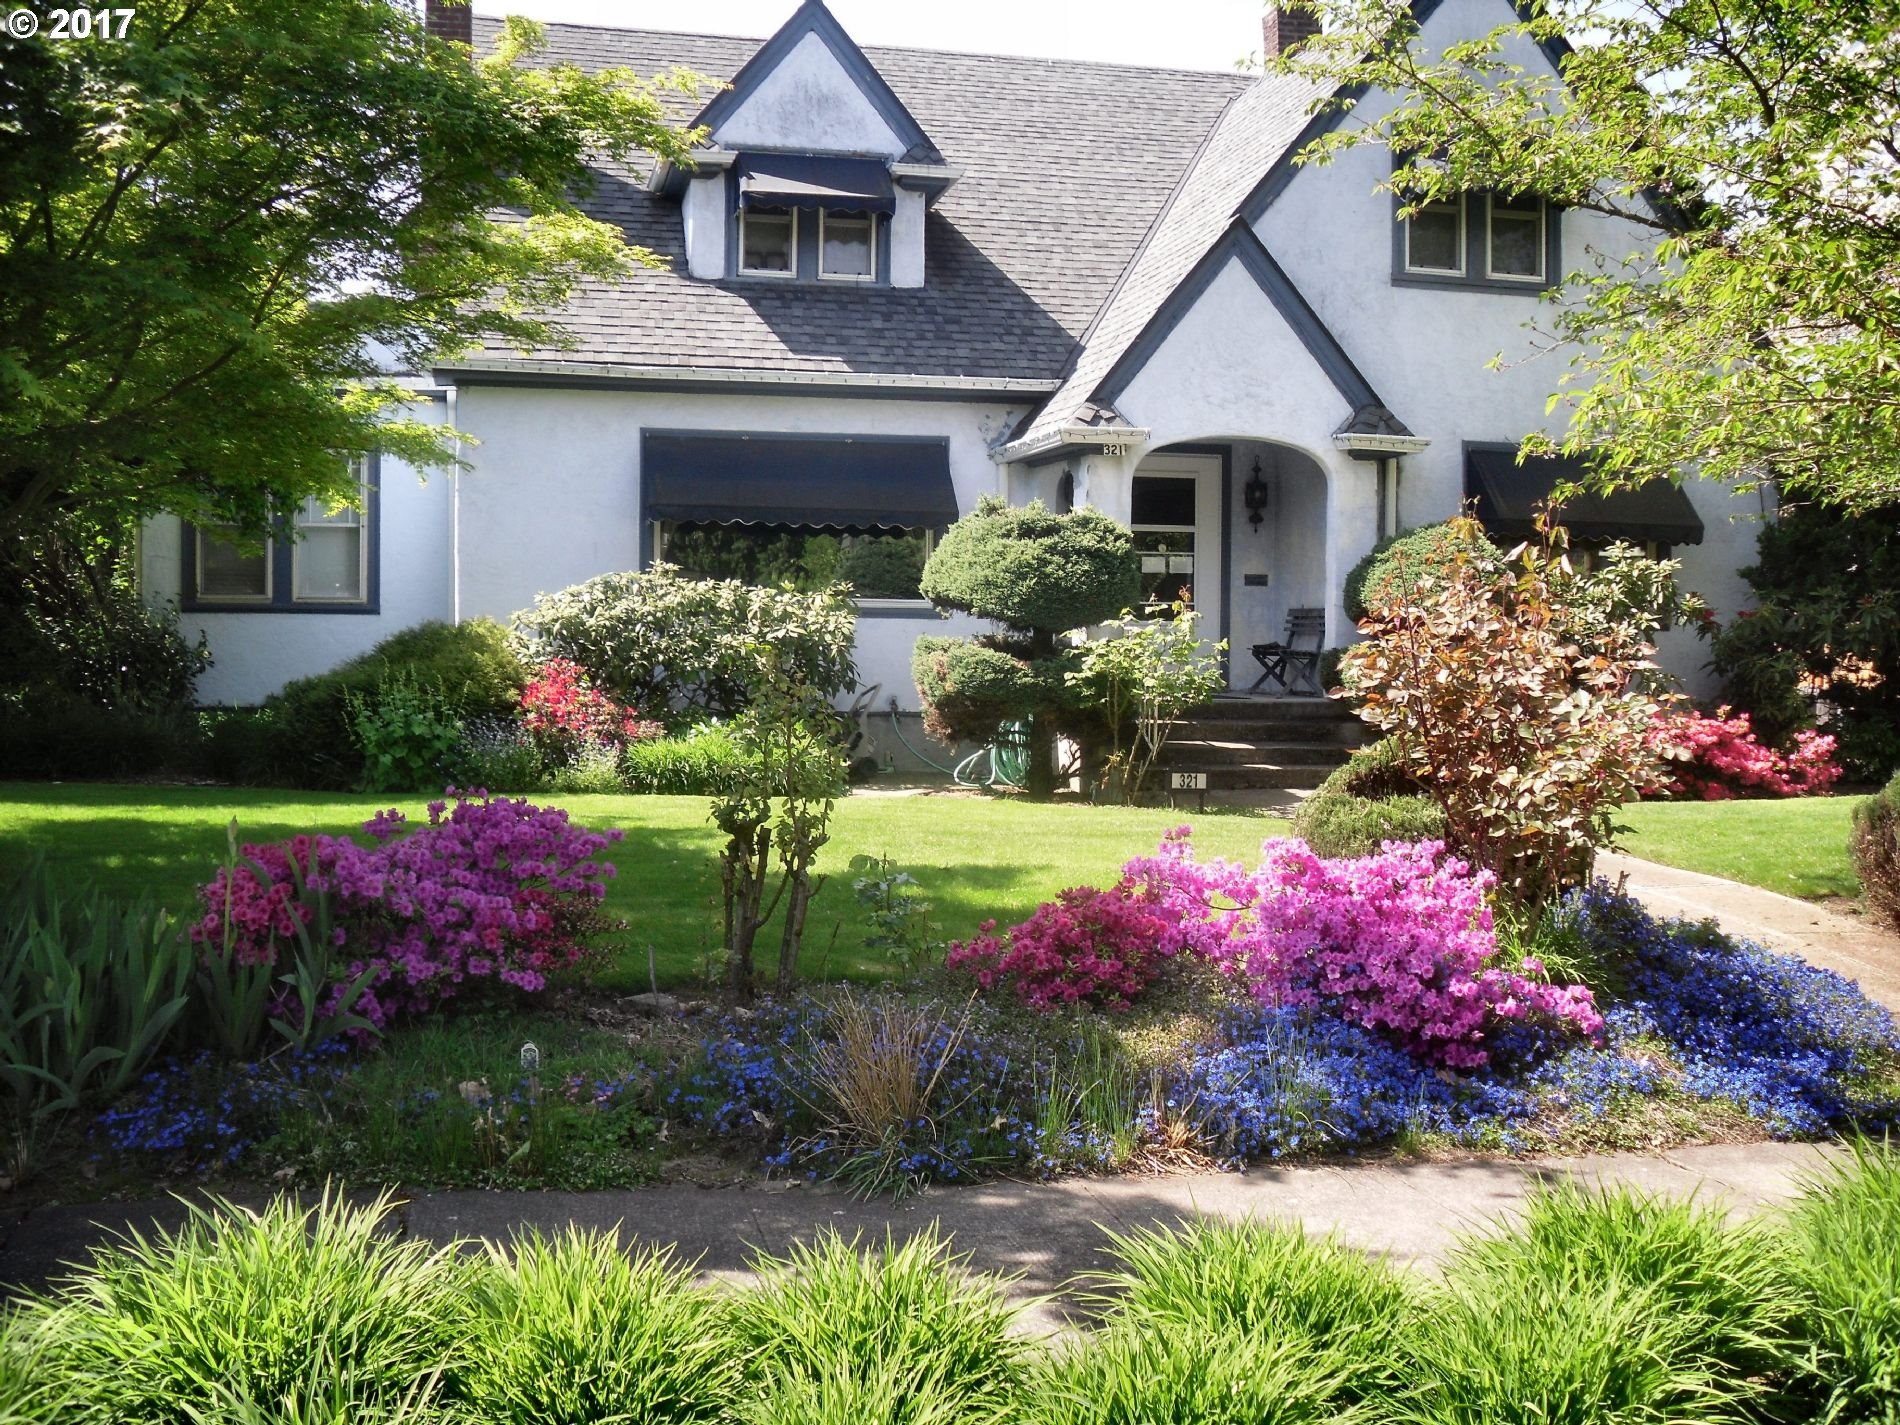 321 SE 45TH AVE Portland, OR 97215 - MLS #: 17671061